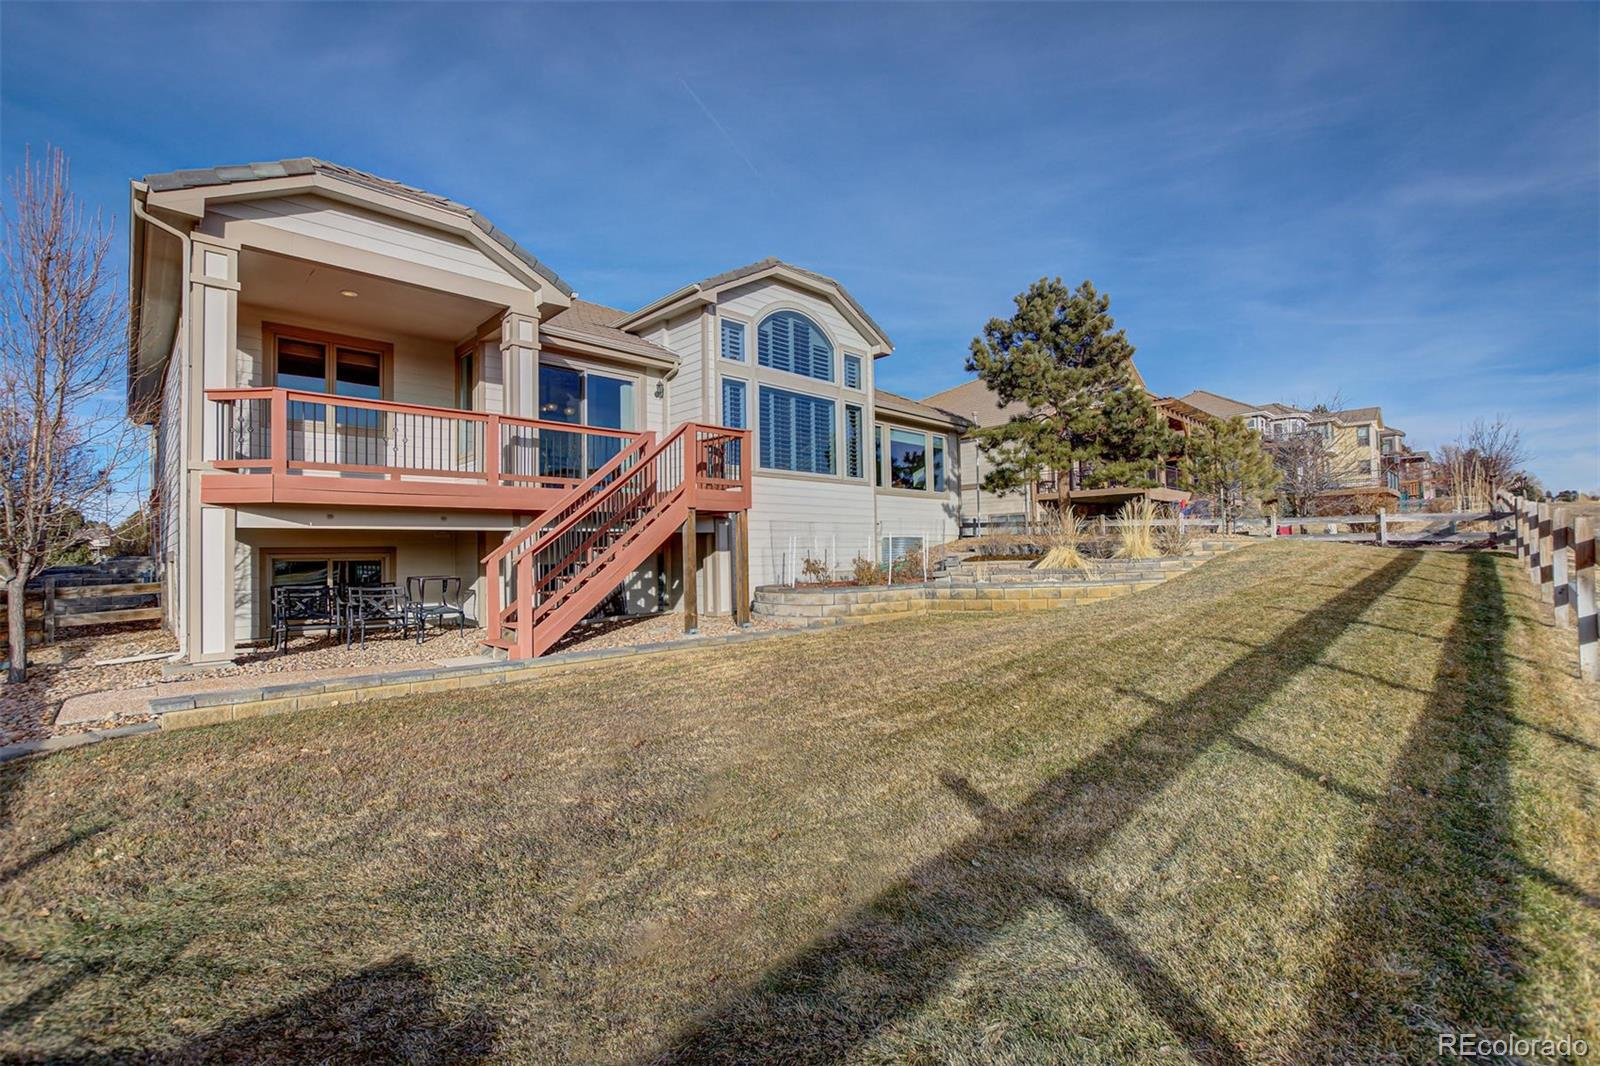 MLS# 5200033 - 7250 Fairway Lane, Parker, CO 80134